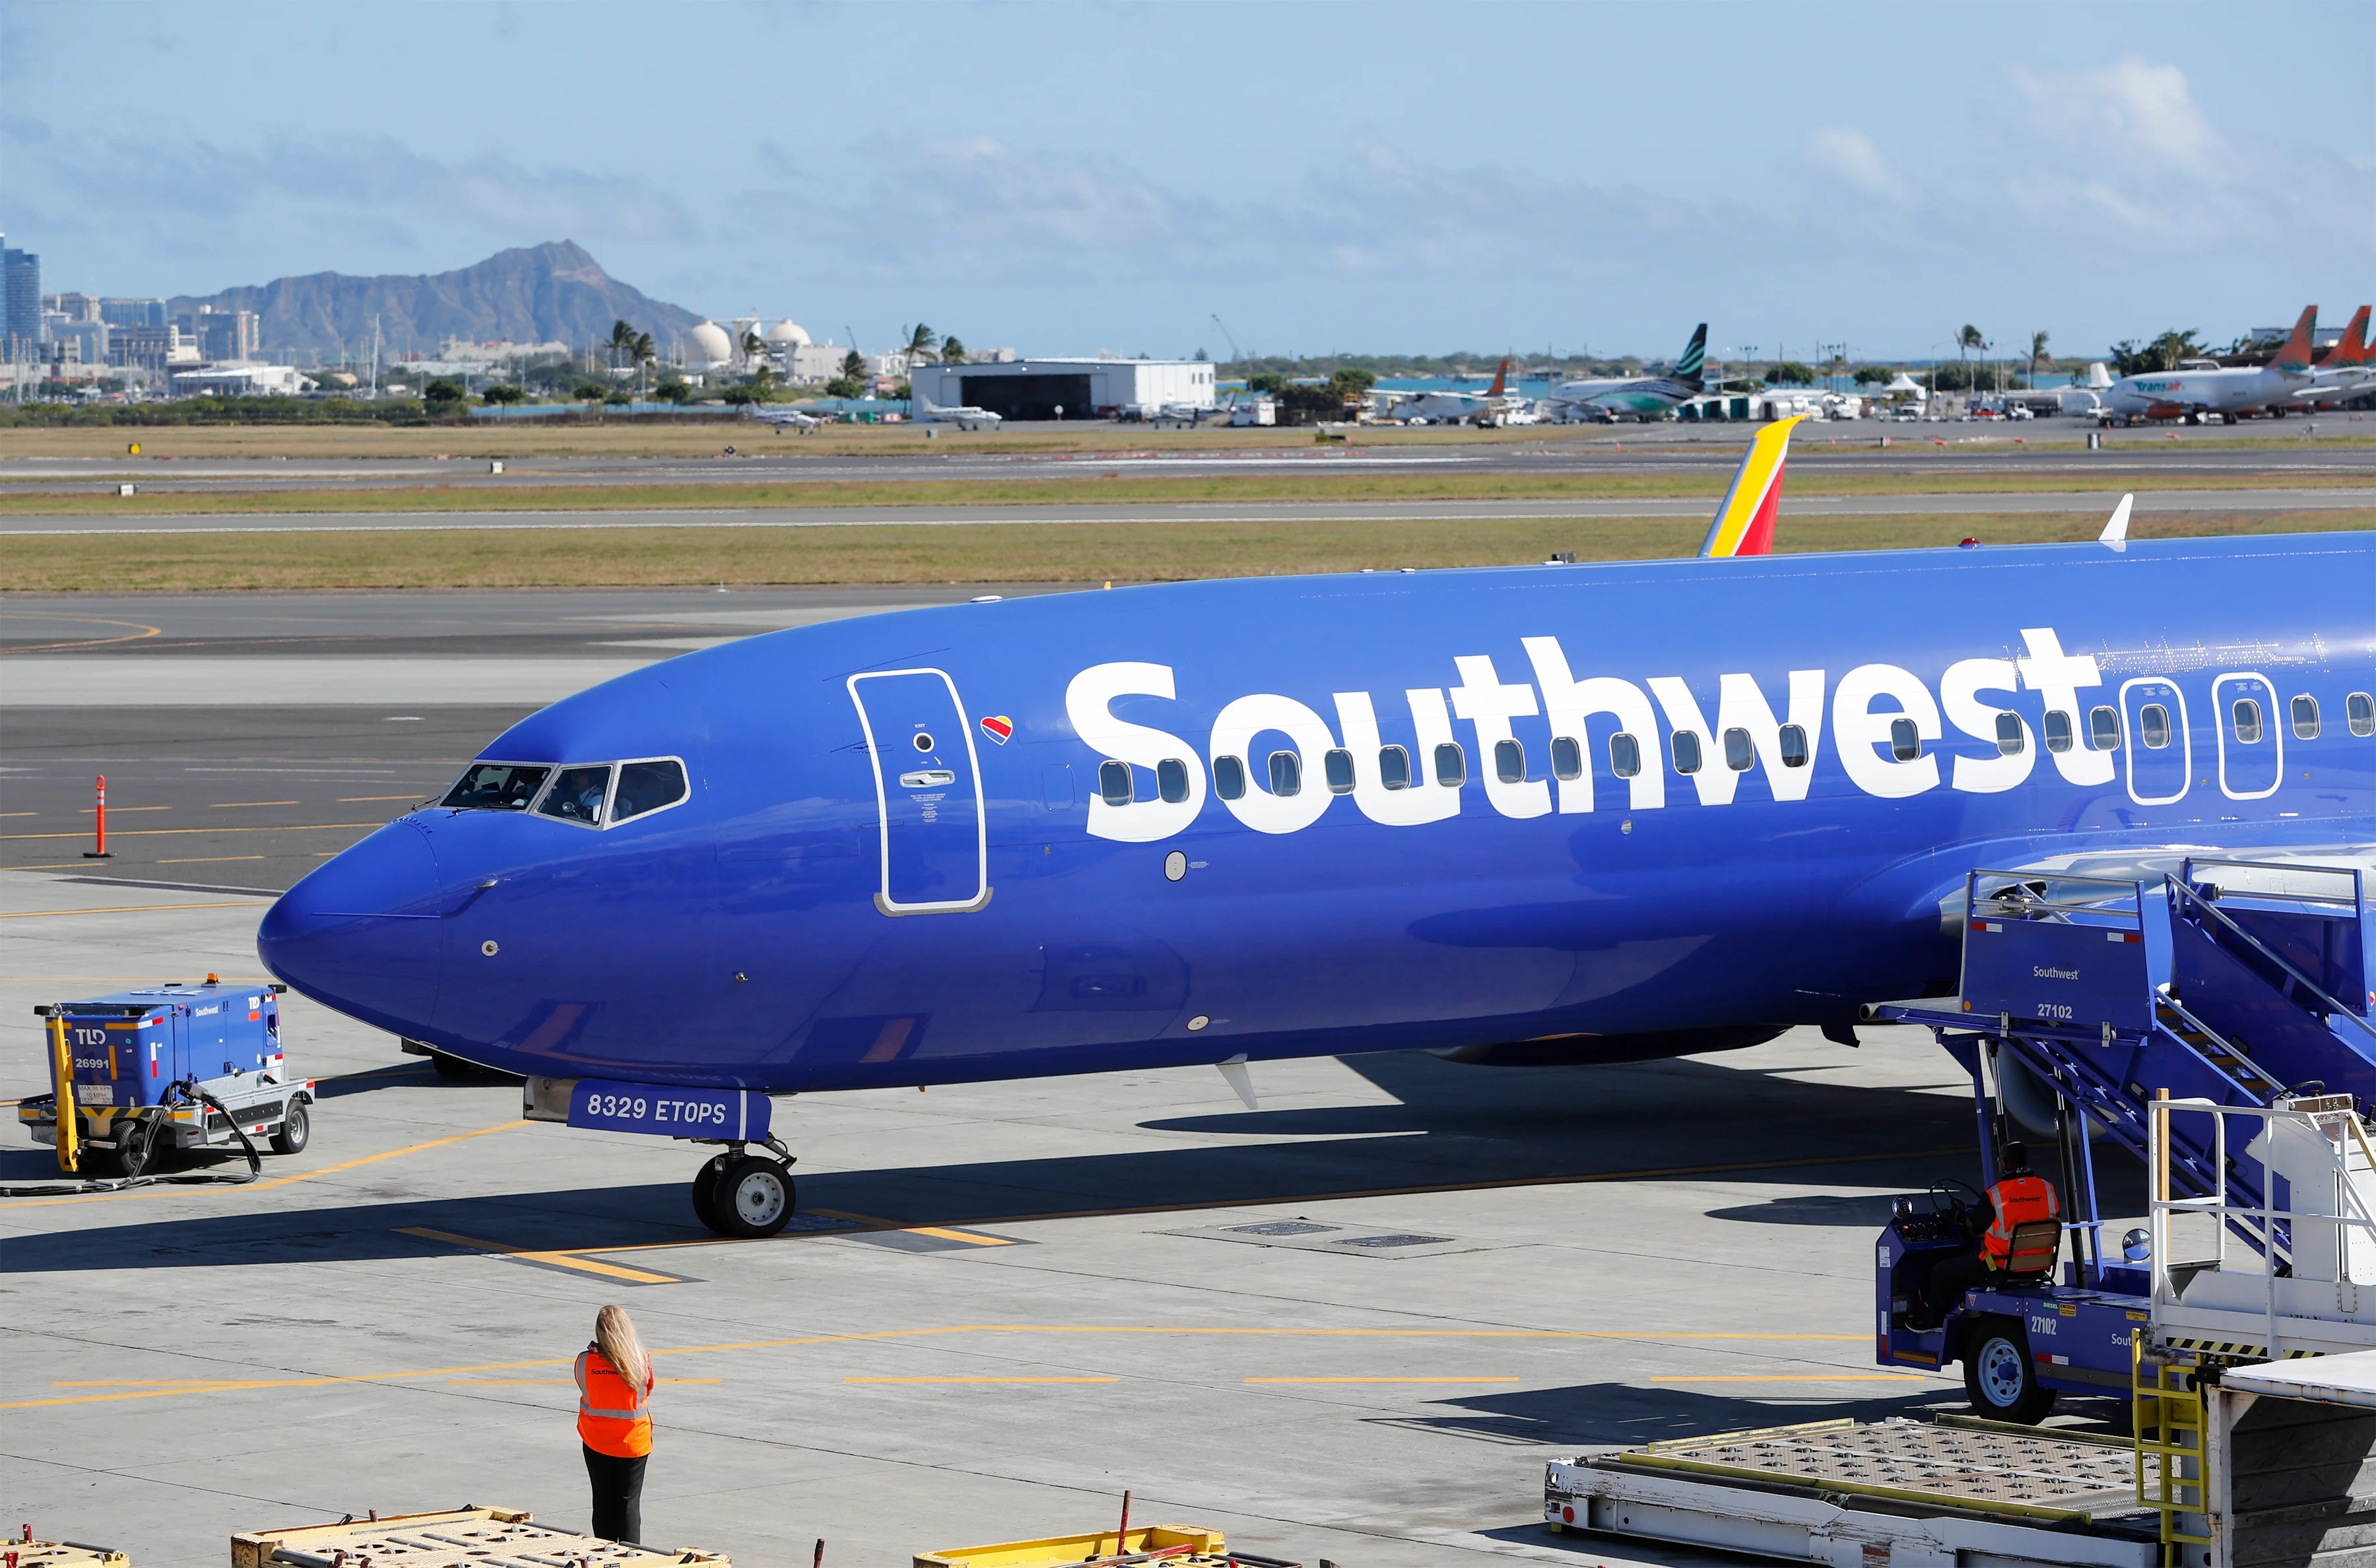 What Are Southwest Promo Codes?